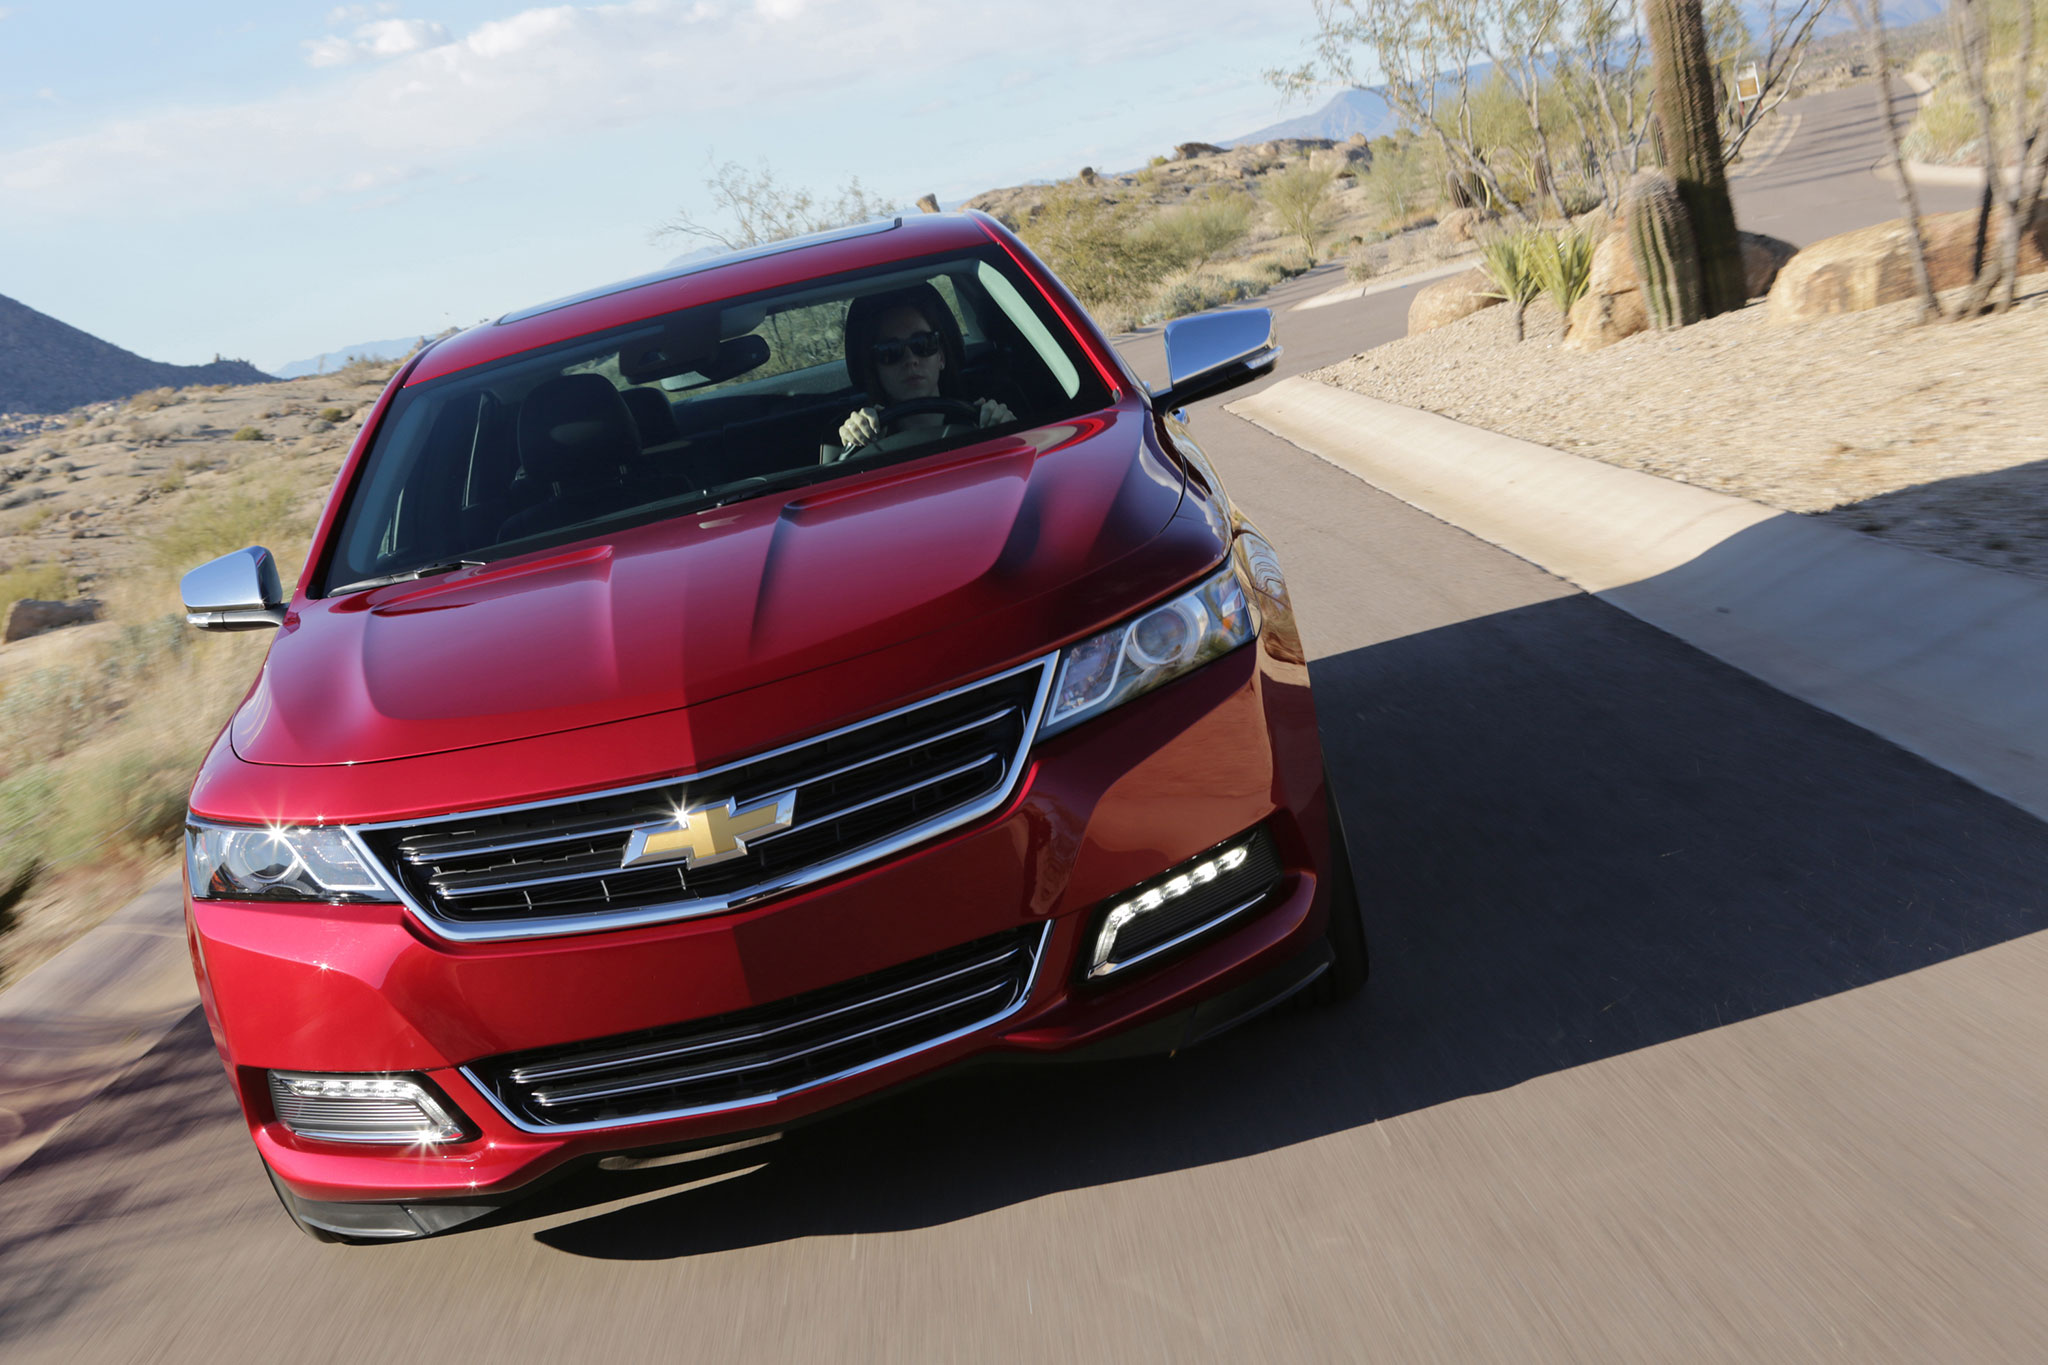 2014 Chevrolet Impala LTZ Front View In Motion1